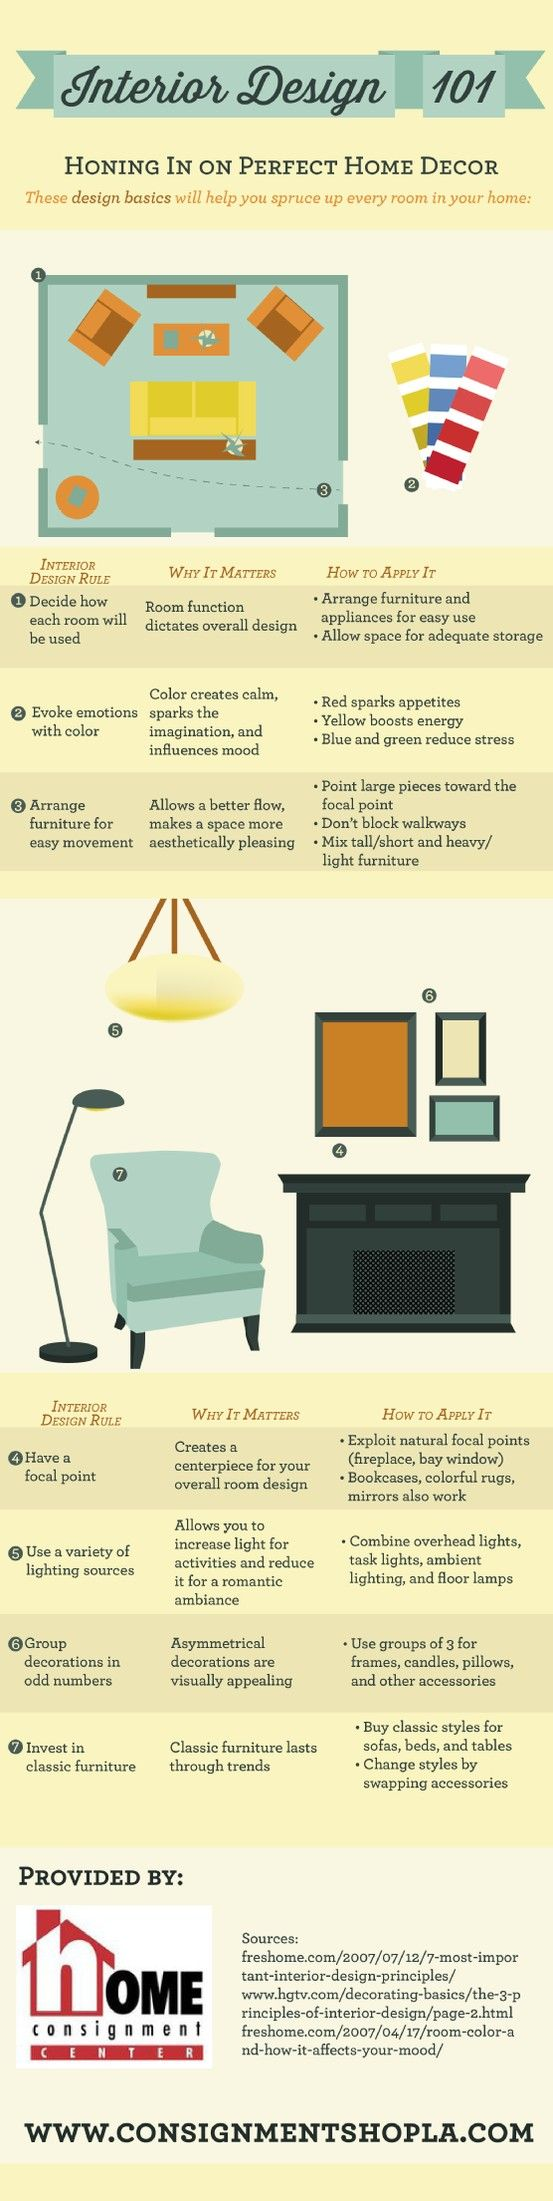 Interior Design | Tipsögraphic | More interior design tips at http://www.tipsographic.com/